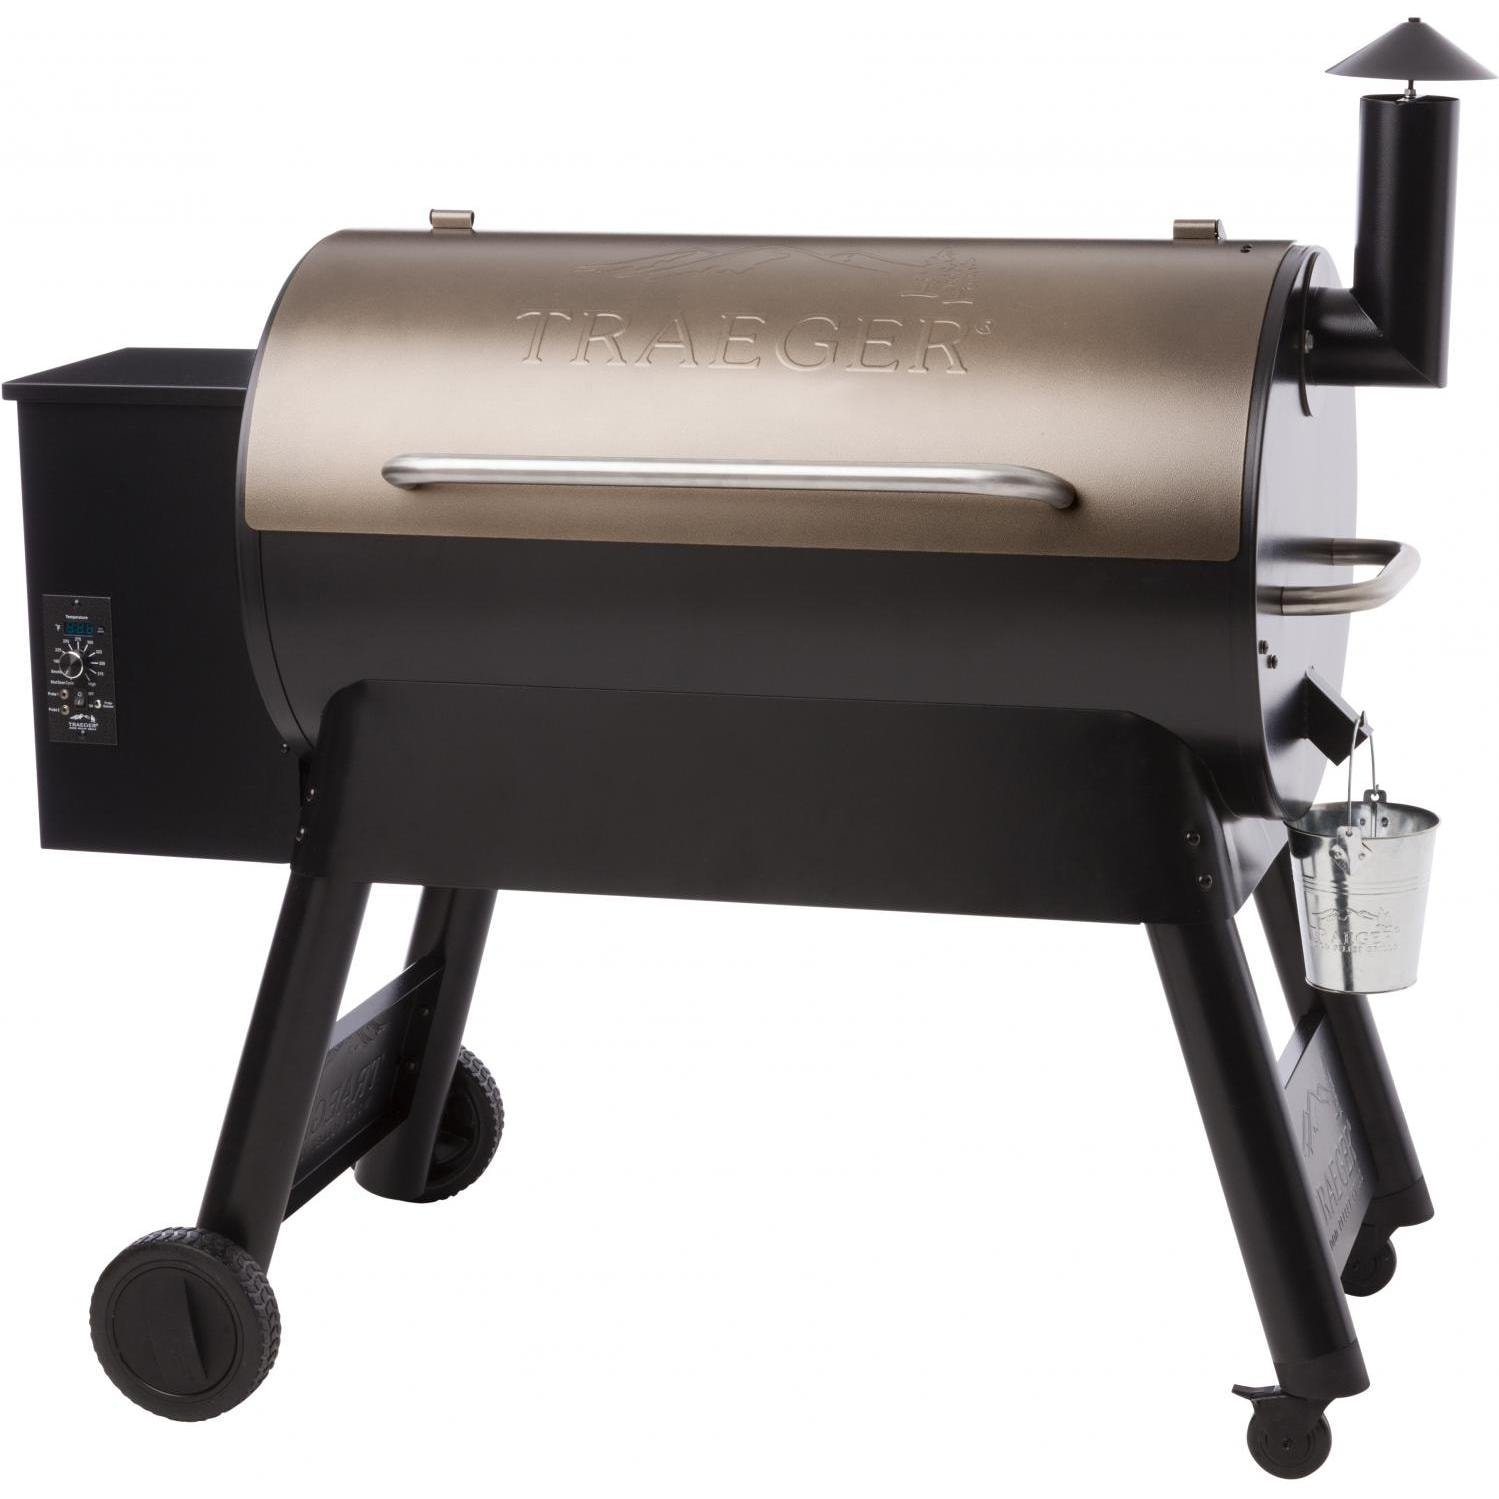 Traeger Pro Series 34-Inch Wood Pellet Grill